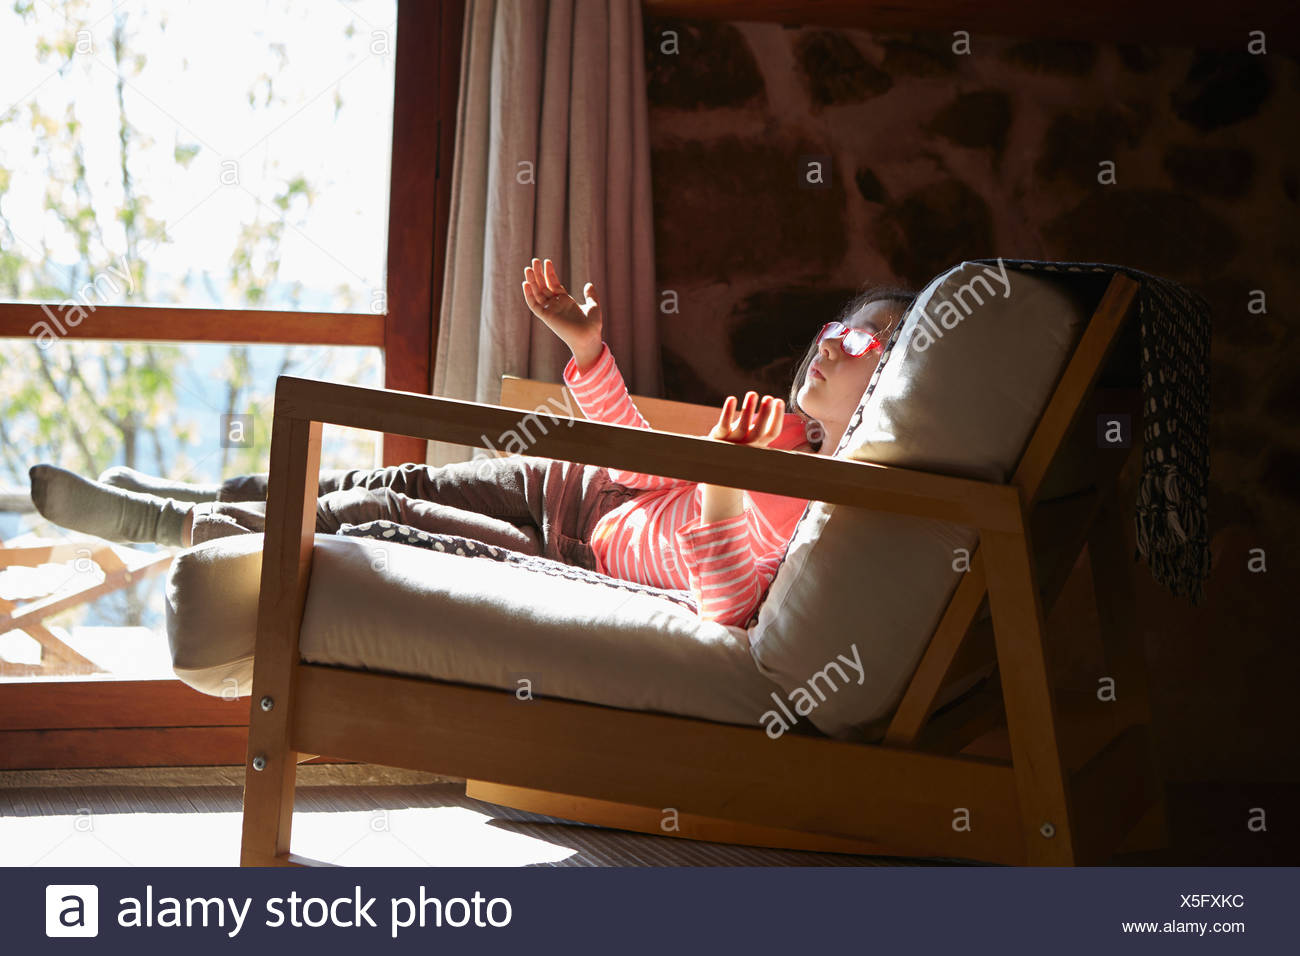 Young girl sitting on rocking chair daydreaming - Stock Image